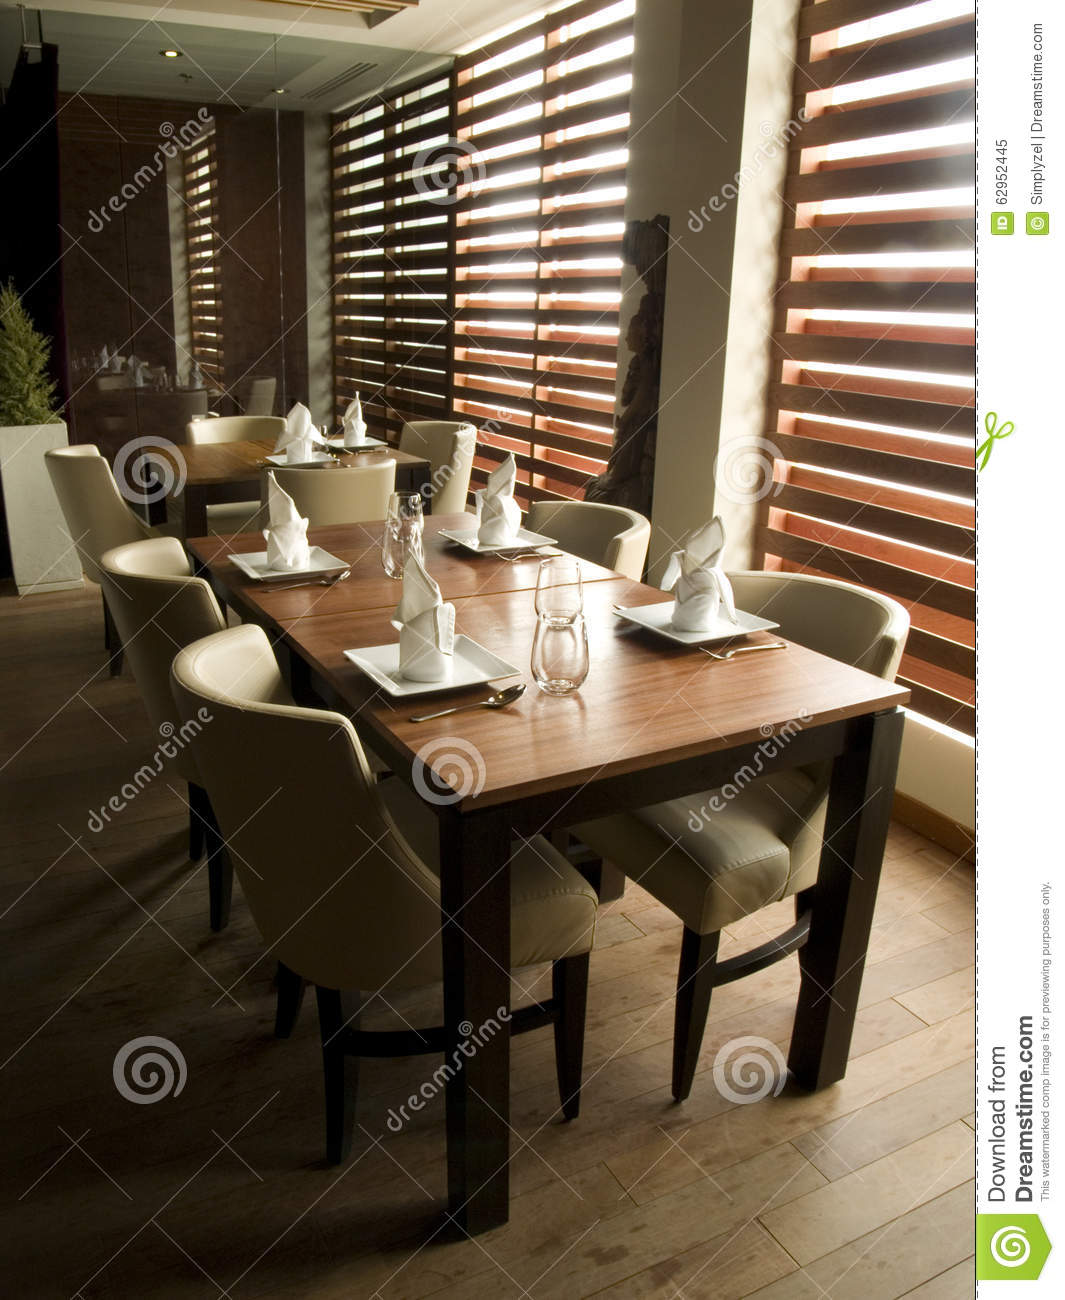 Modern restaurant table setting - Modern Restaurant Table Setting